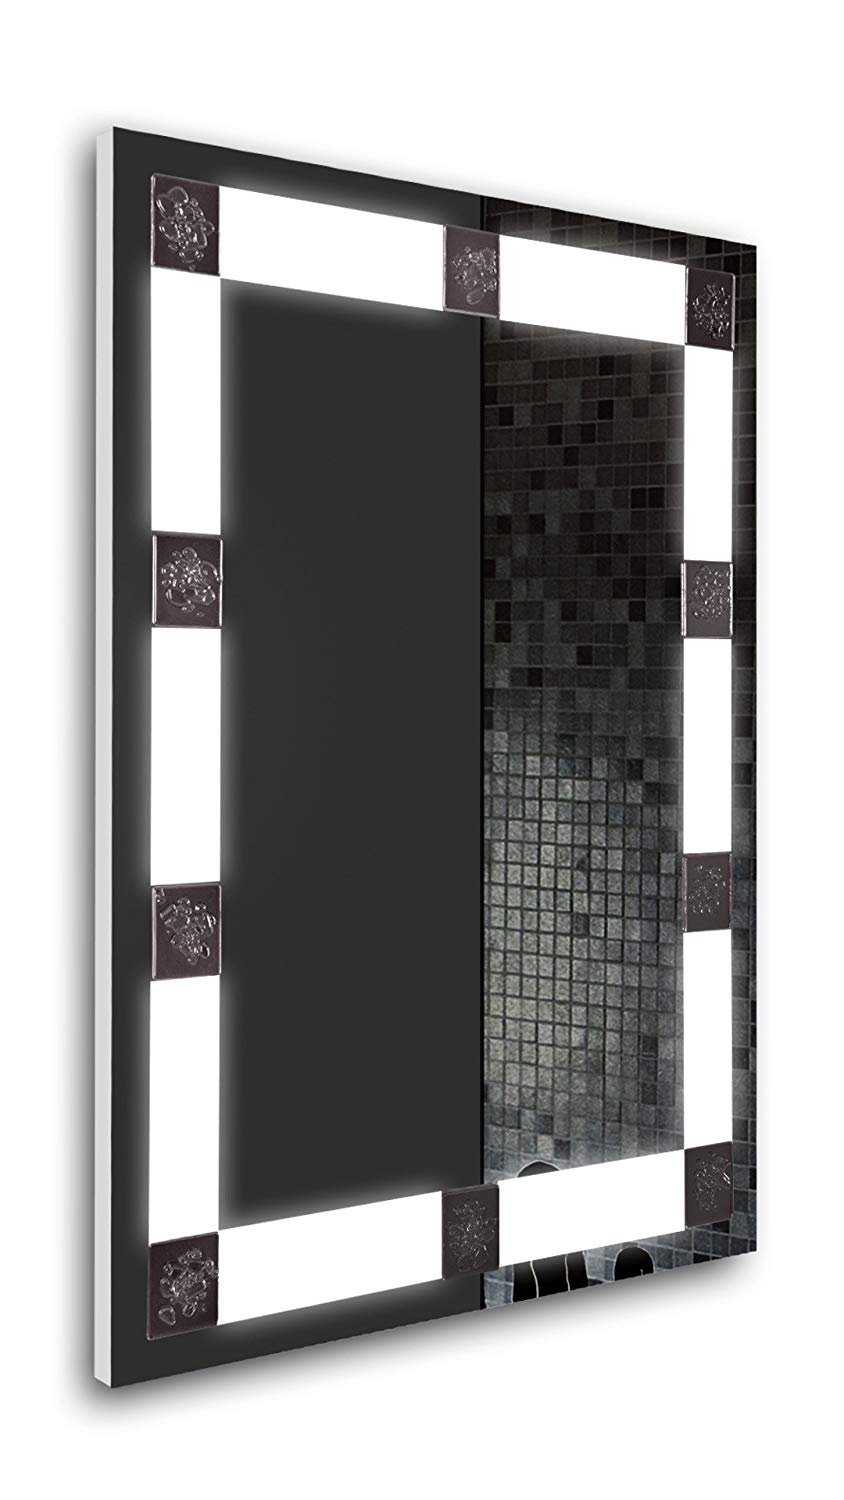 Tilebay LLC Remus Led Lighted Rectangle Bathroom Mirror , Illuminated Wall Mounted Horizontal/Vertical Mirror 31x23 with Touch Button Switch